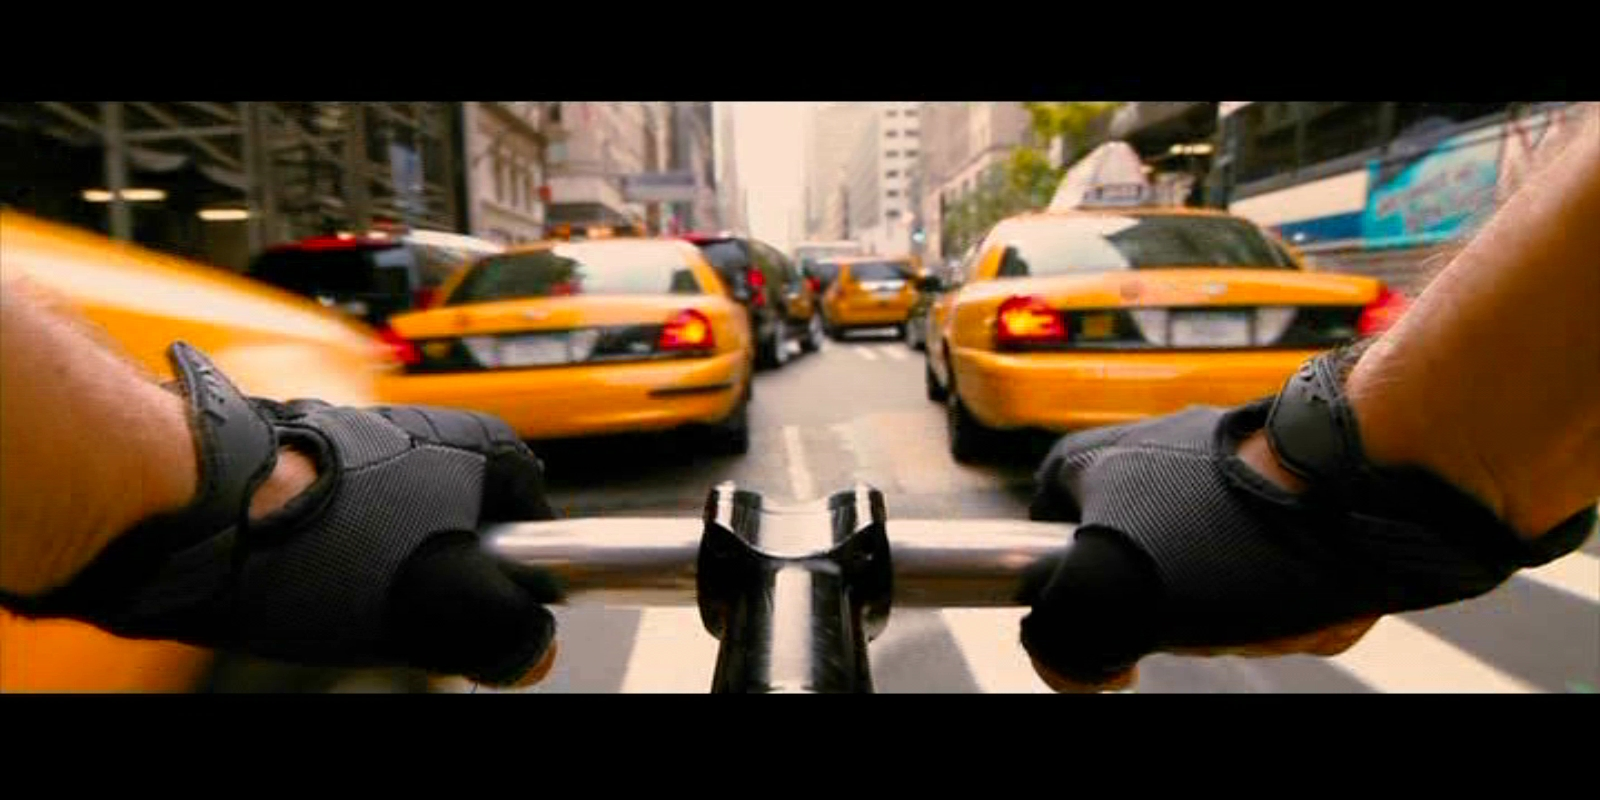 bike messenger movie premium rush